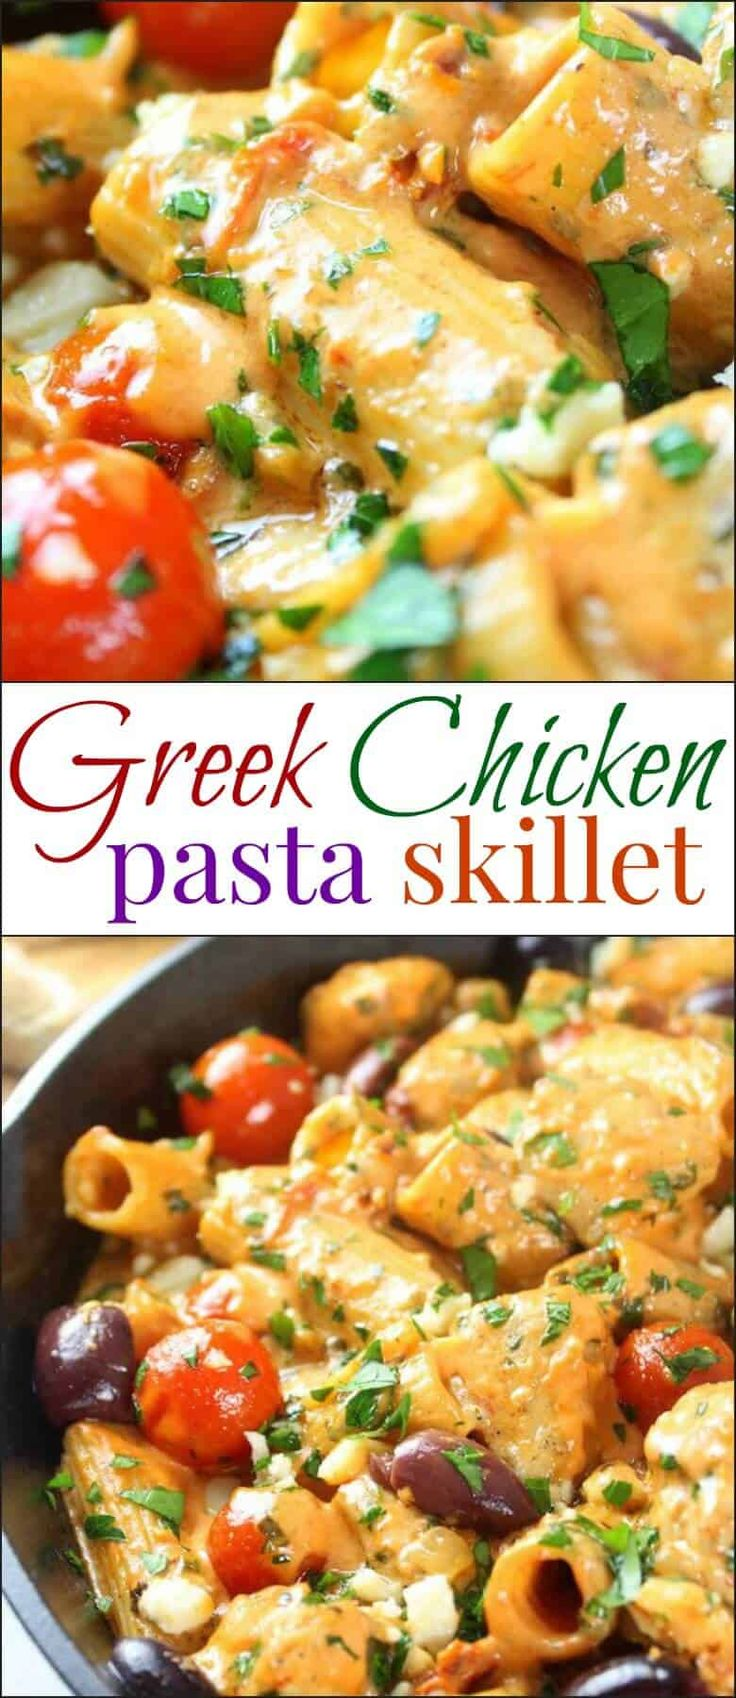 This Greek Chicken Pasta Skillet is zesty and creamy and full of all your favorite Mediterranean flavors! With sun-dried tomatoes, feta cheese, Kalamata Olives, garlic, chicken, pasta and more – it's truly a meal the whole family will love! via @ohsweetbasil